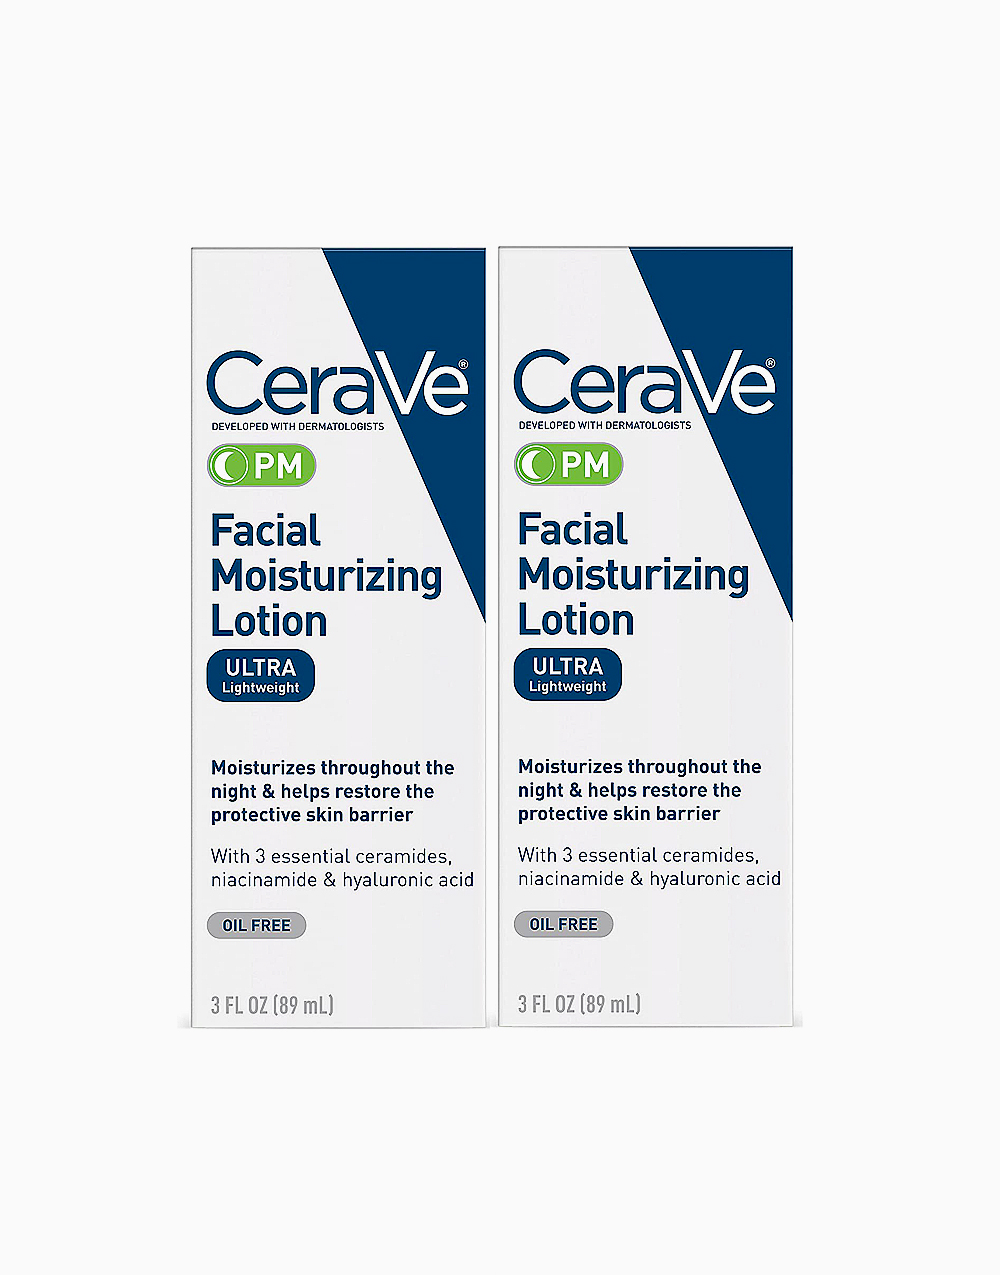 PM Facial Moisturizing Lotion (89ml) by CeraVe